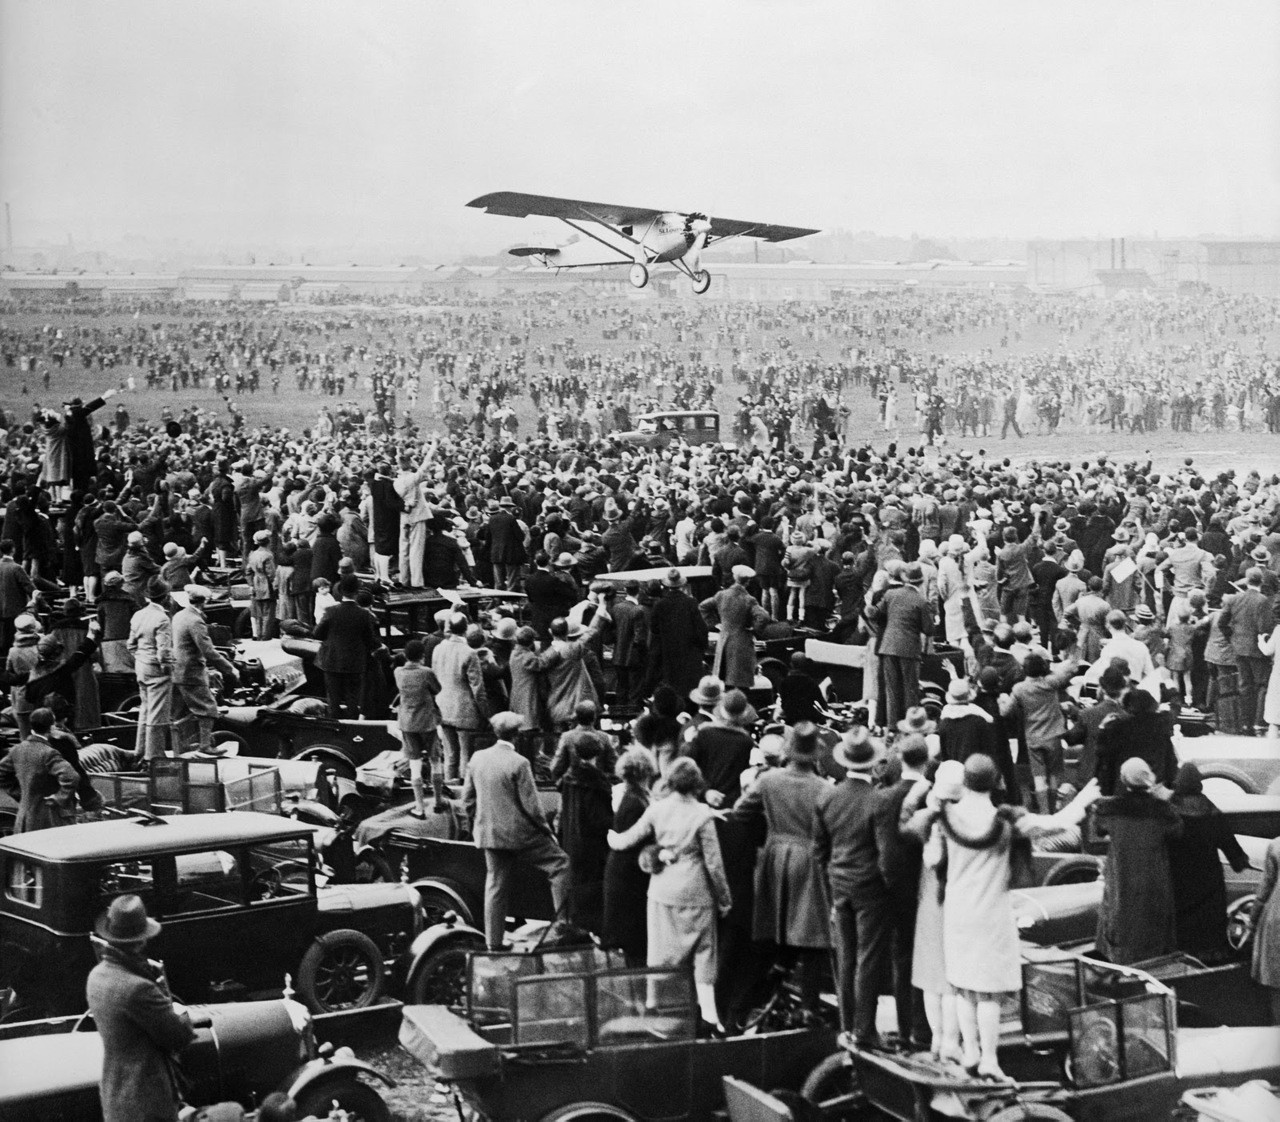 Charles Lindbergh flew Spirit of St. Louis from Brussels, Belgium, to Croydon Aerodrome, London, England, on May 29, 1927.